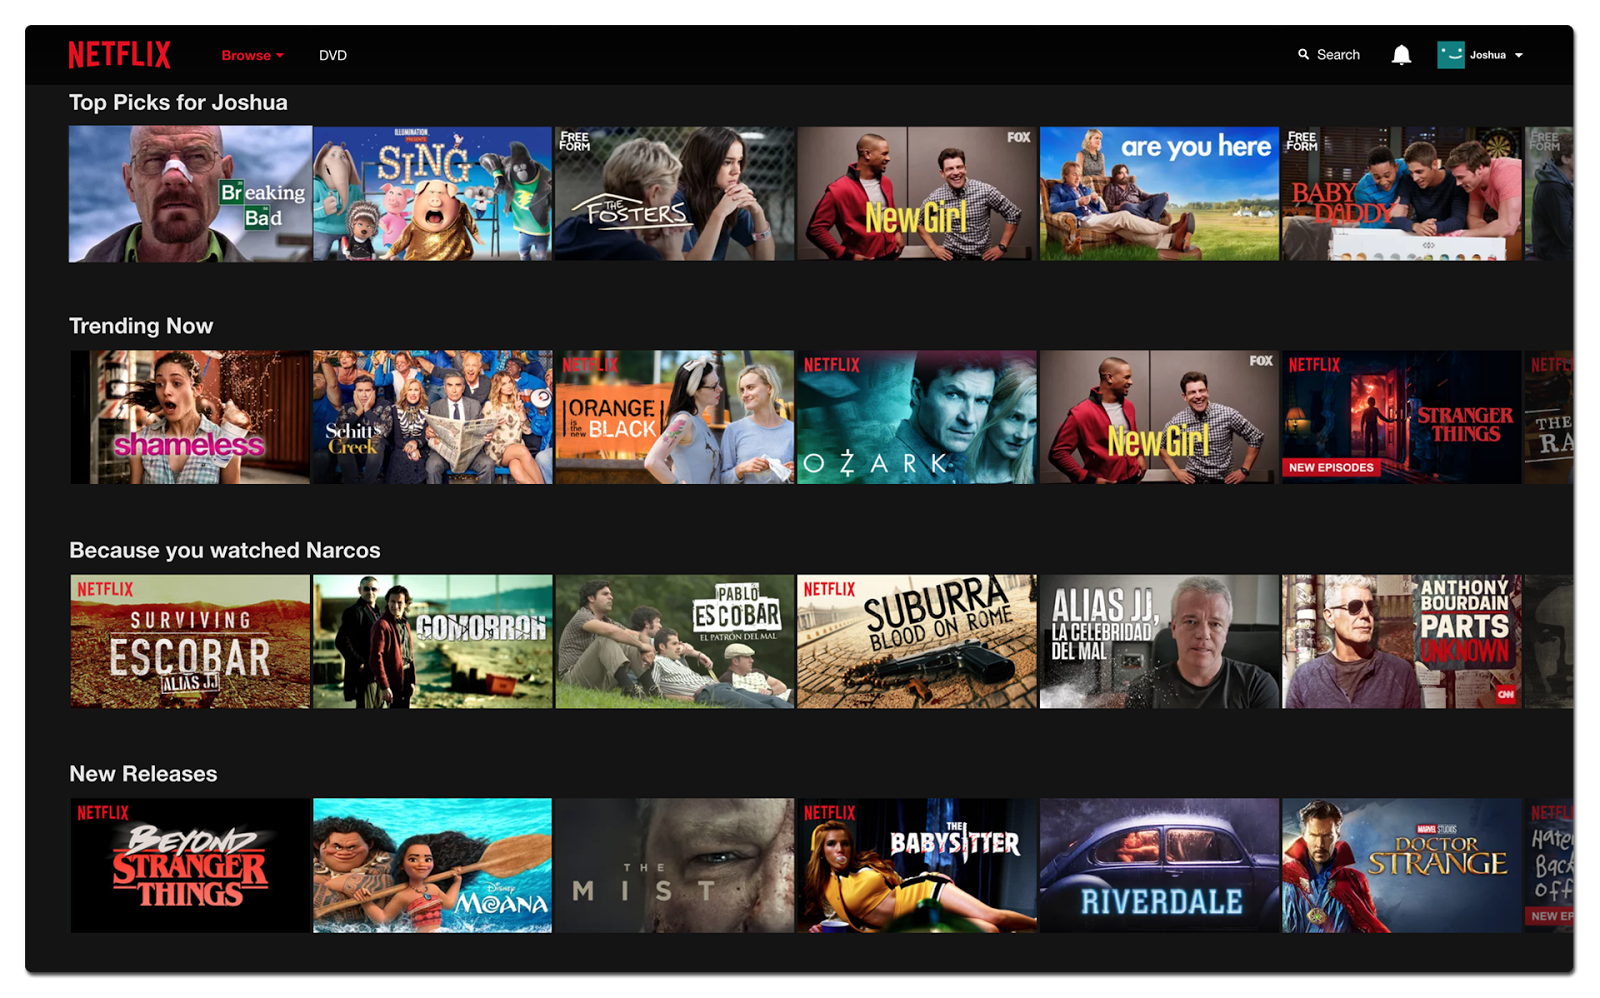 Innovating Faster on Personalization Algorithms at Netflix